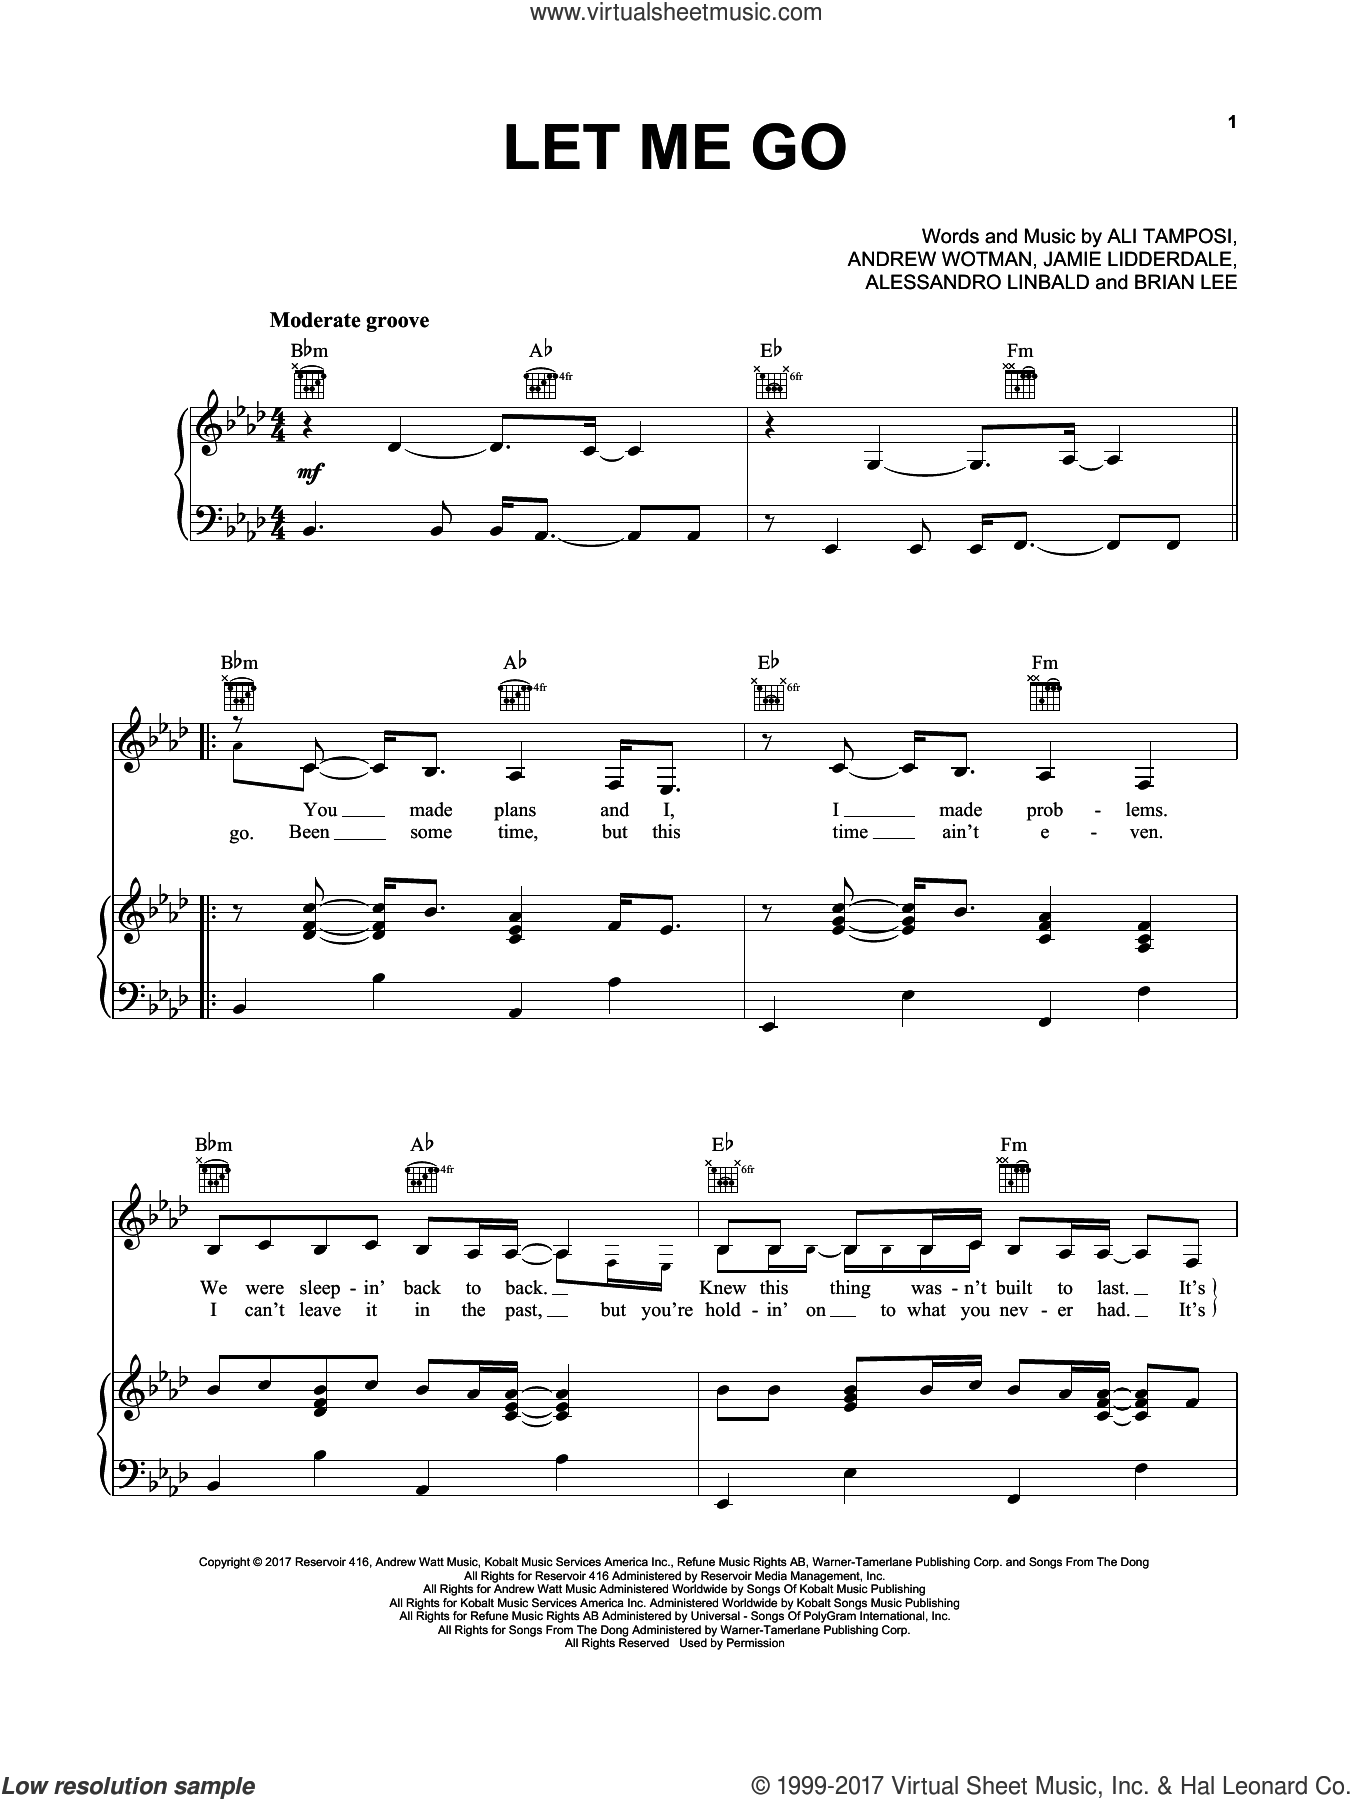 Let Me Go sheet music for voice, piano or guitar by Hailee Steinfeld and Alesso feat. Florida Georgia Line, Alessandro Linbald, Ali Tamposi, Andrew Wotman, Brian Lee and Jamie Lidderdale, intermediate skill level